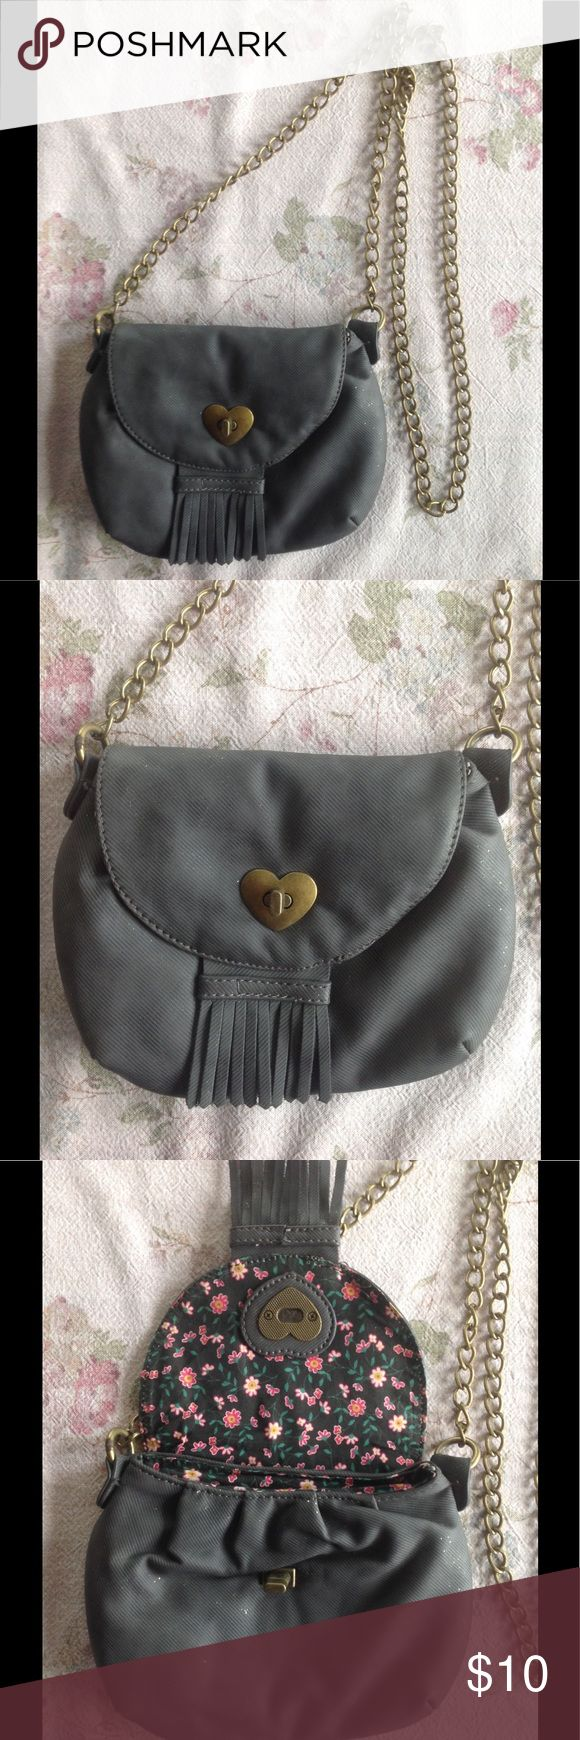 ✨American Rag Small Cross Body Bag Sparkly Gray✨ This small cross-body bag is 6inx7.5in and hangs on a gold chain. Originally purchased from Macy's. only used once. Body is dark gray with scattered sparkles and 100% PU/by cast leather. Interior is a pretty floral print and has one zip pocket inside. Great condition! Check my other listings for great brand names. ✨Make an offer and check my other listings for more deals on brand name clothing!✨ American Rag Bags Crossbody Bags